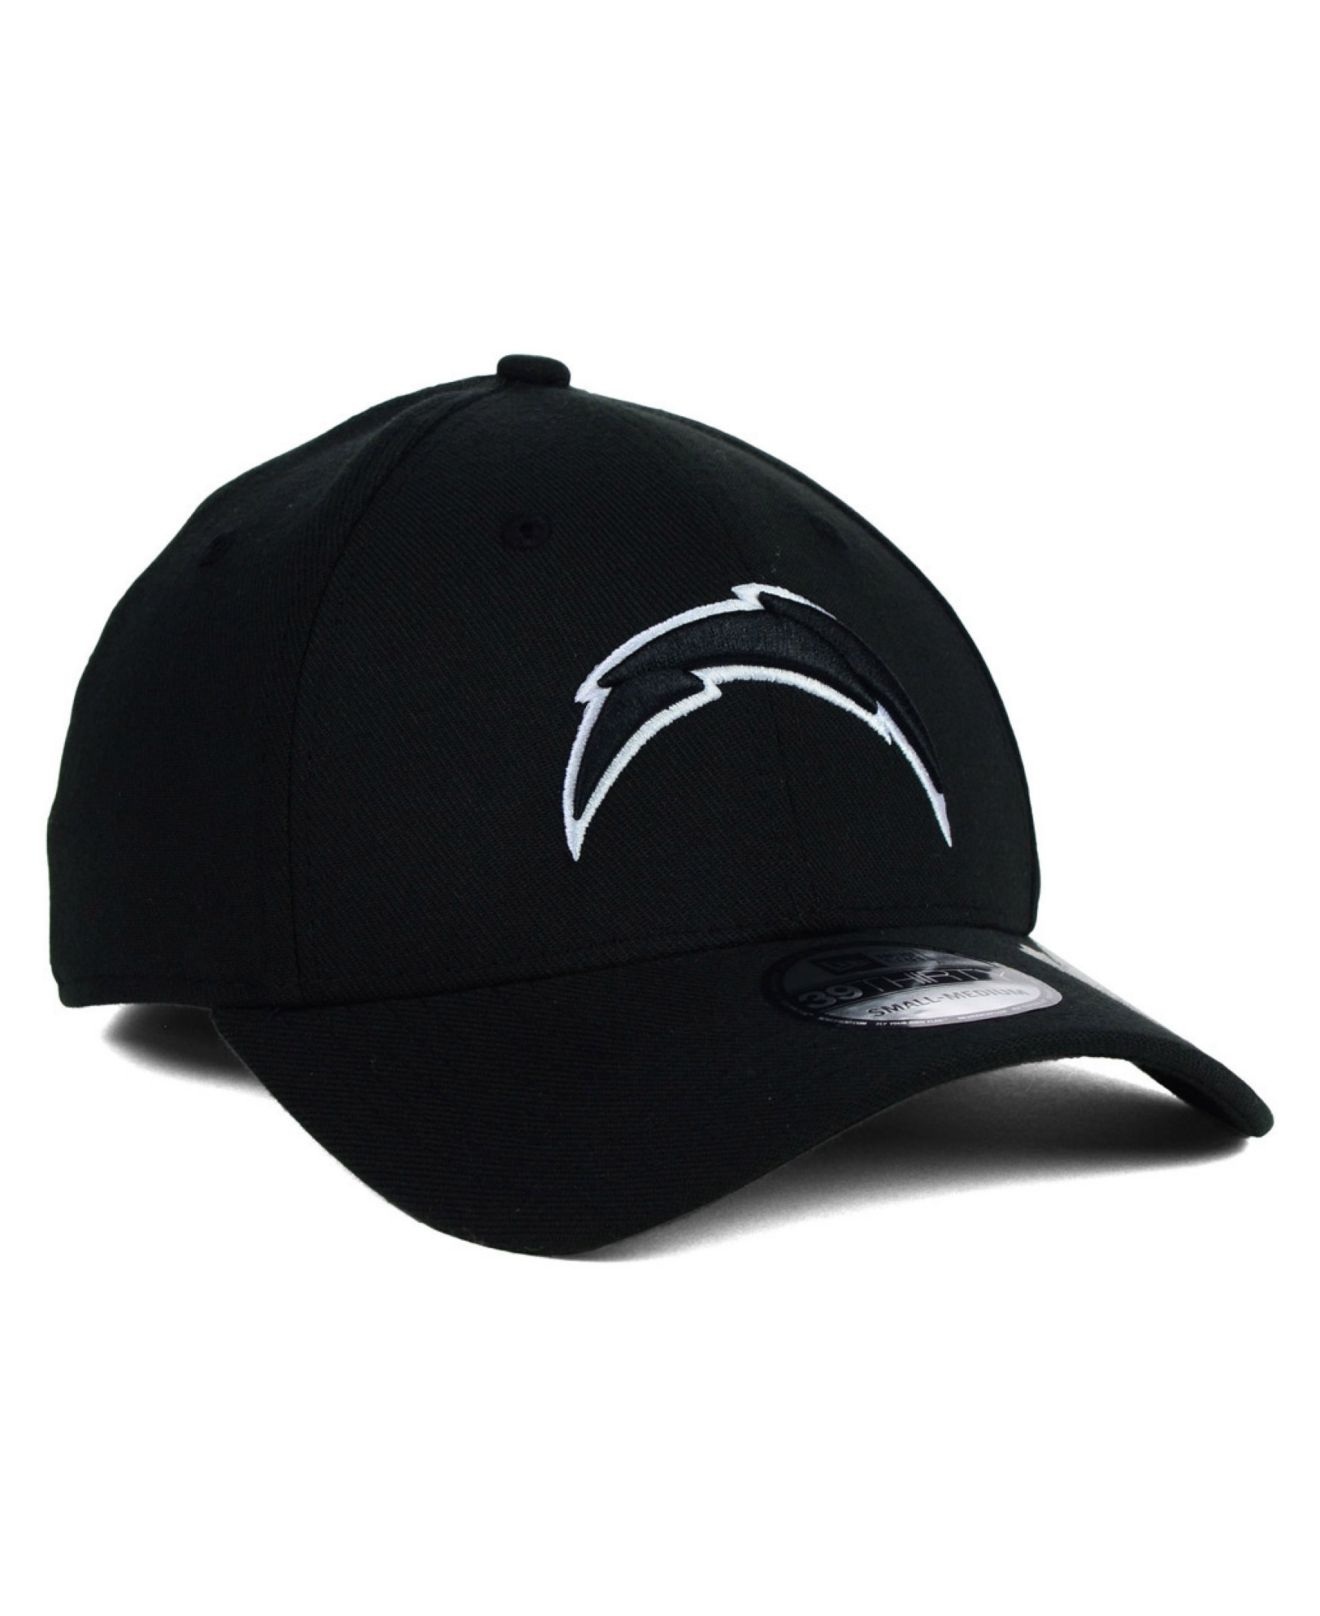 New era black san diego chargers black and white classic thirty cap product  normal jpg 1320x1616 e3afd0564